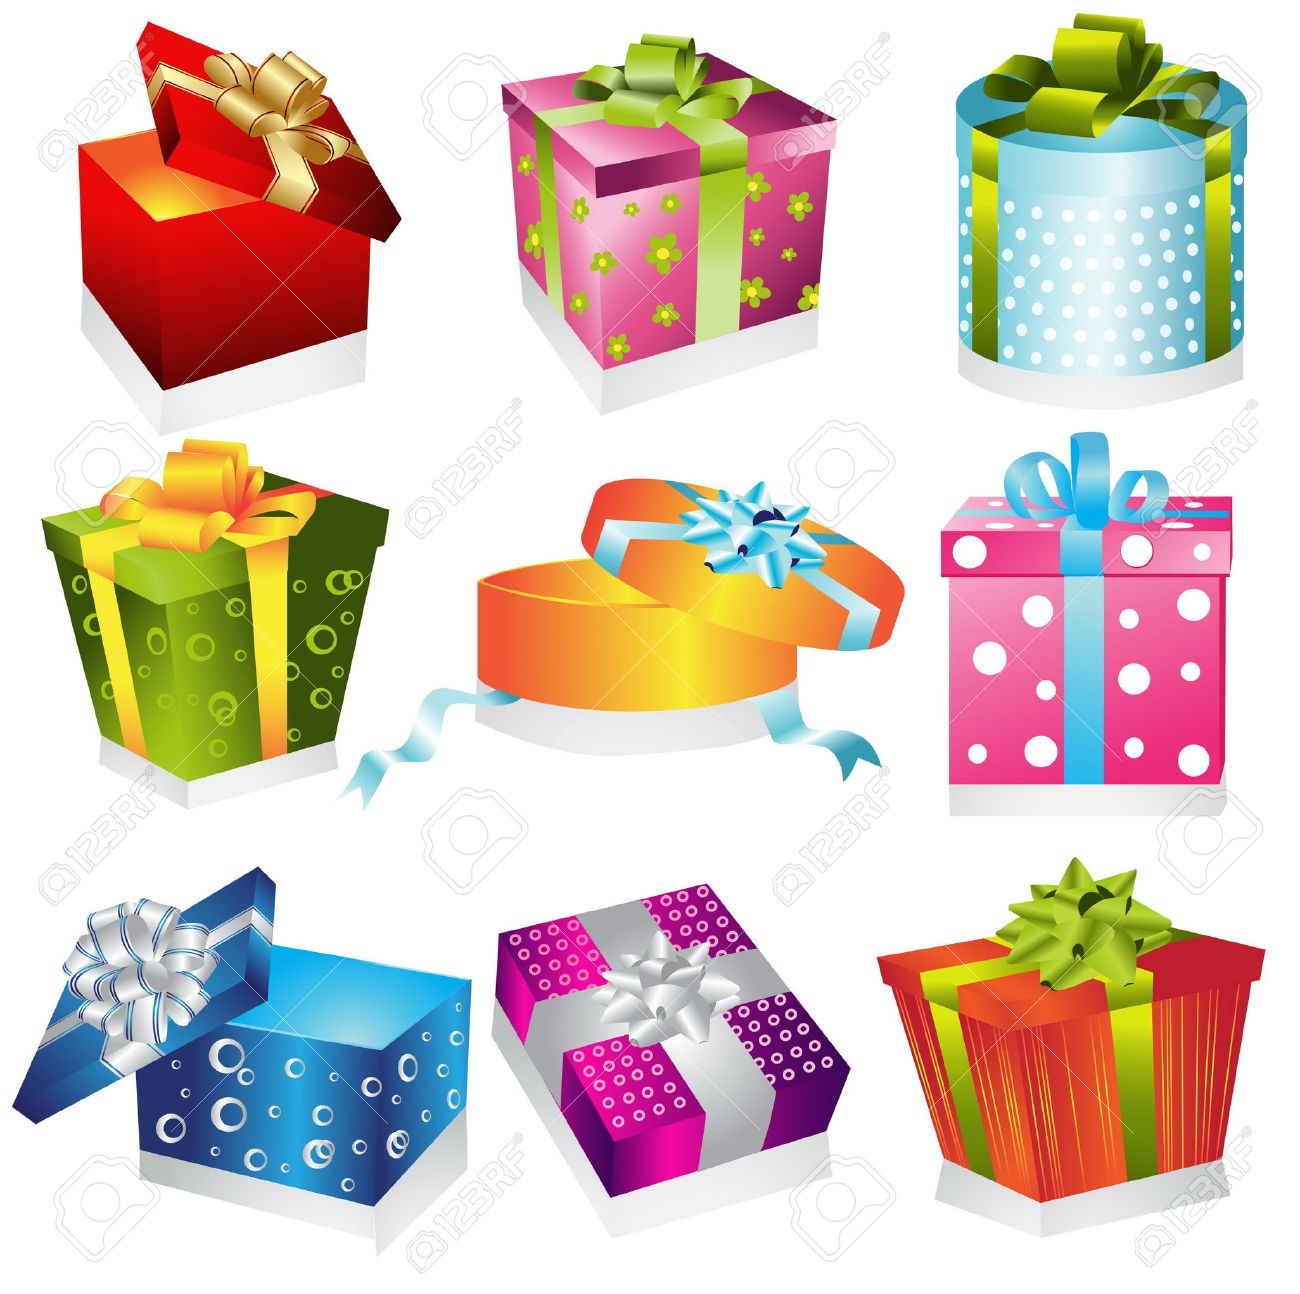 Different Gifts Illustration Royalty Free Cliparts, Vectors, And ...